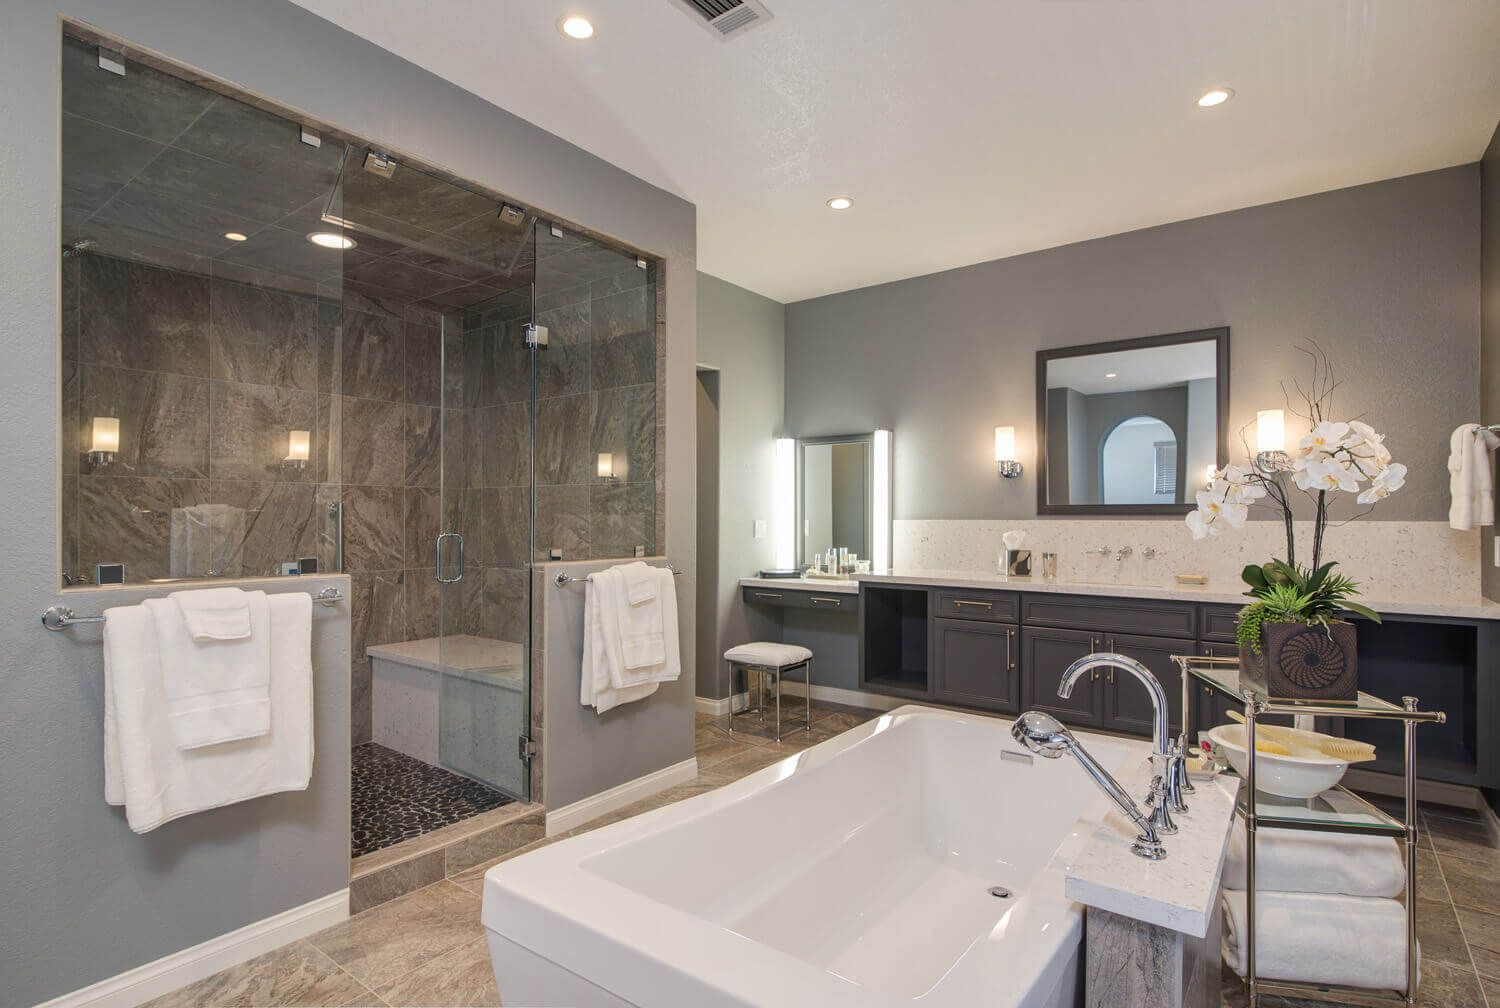 Bathroom Renovation Cost 2018 bathroom renovation cost - estimate bathroom remodeling prices OUXQYHS #modernfarmhousestyle